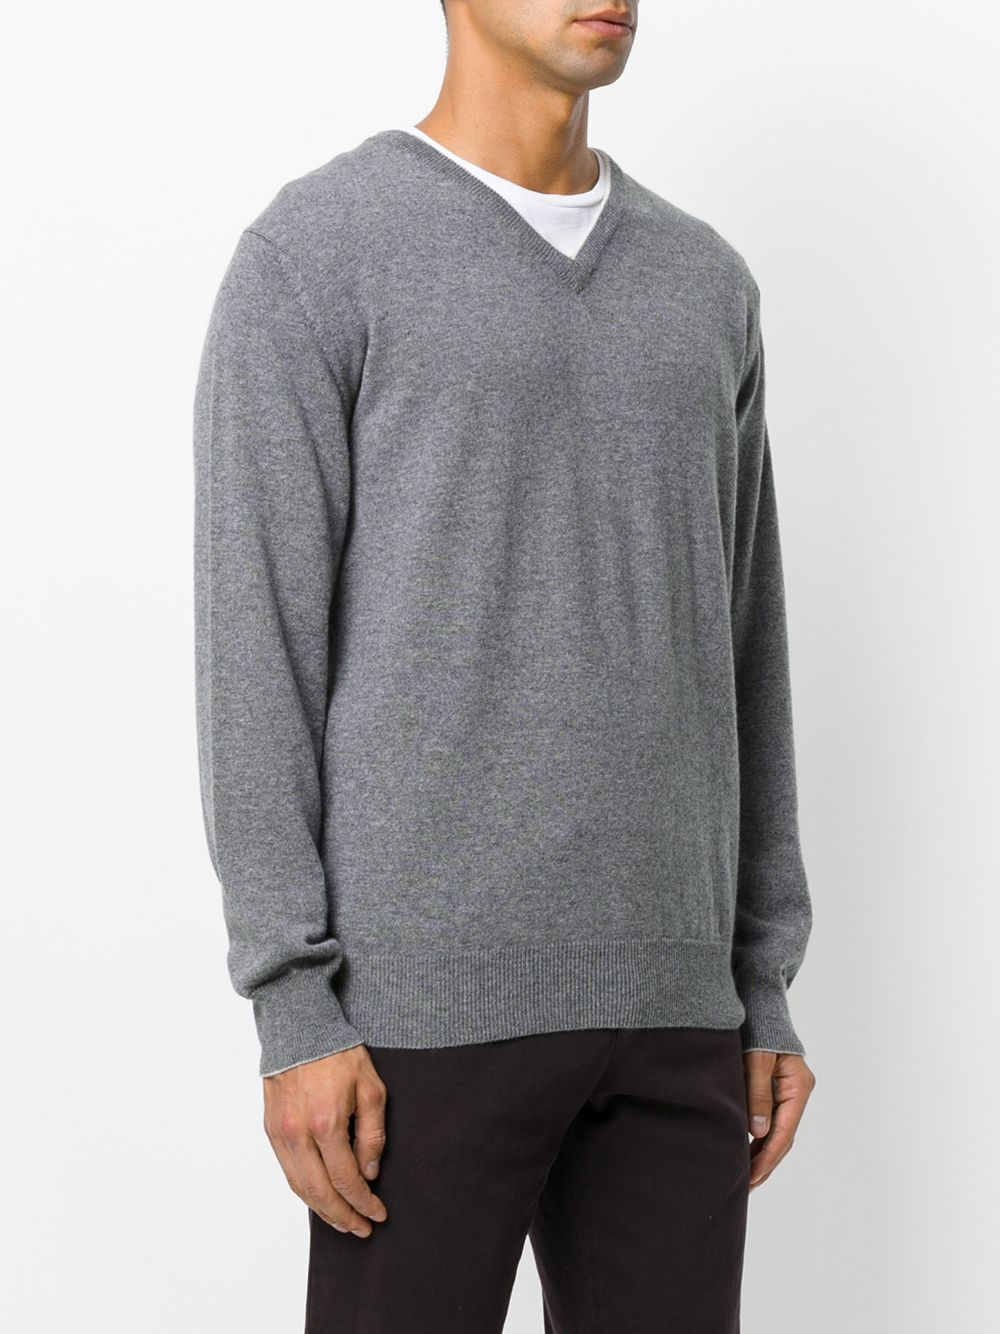 grey cachemere jumper with V-neck white detail ELEVENTY |  | 979MA0205-MAG2400614